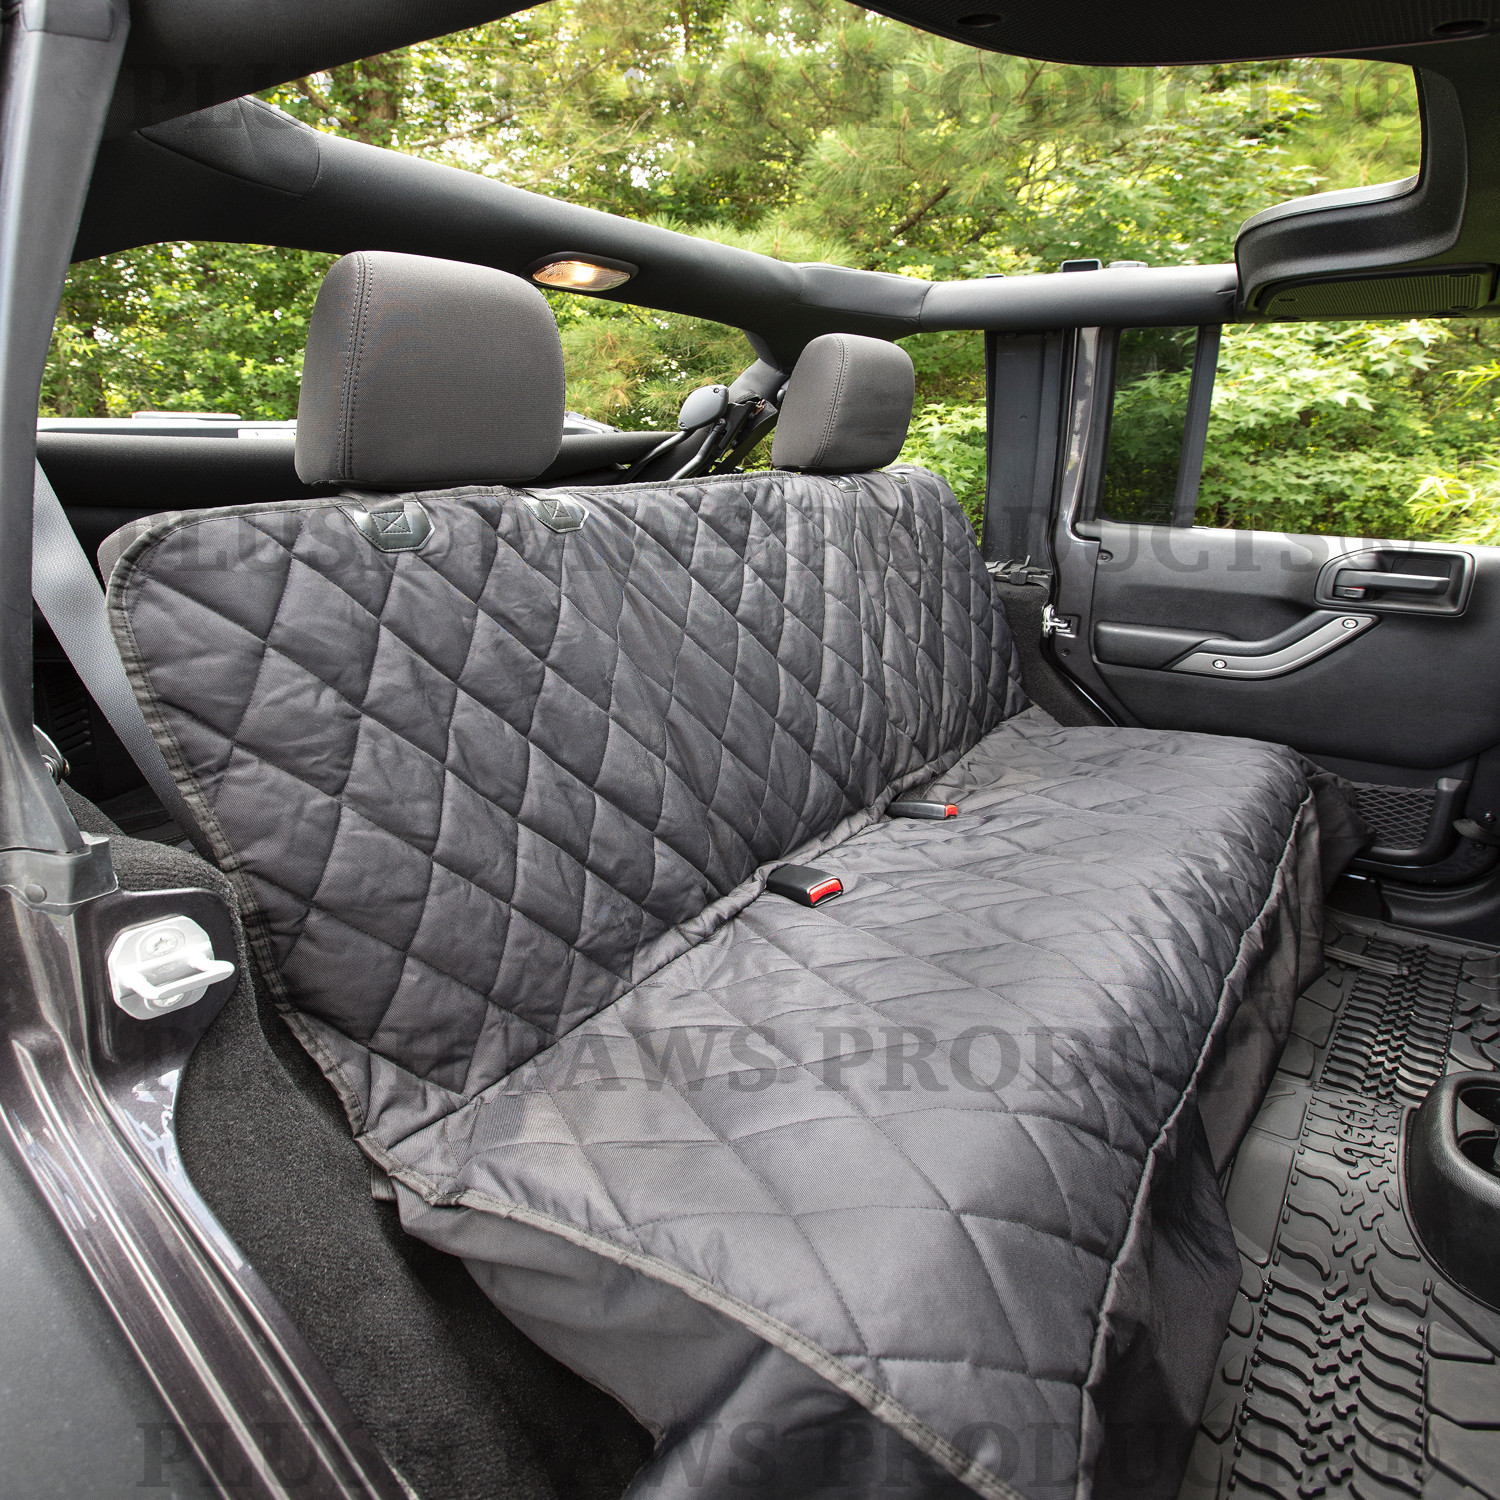 Plush Paws Products Pet Car Seat Cover Regular - Black - Walmart.com : quilted car seats - Adamdwight.com